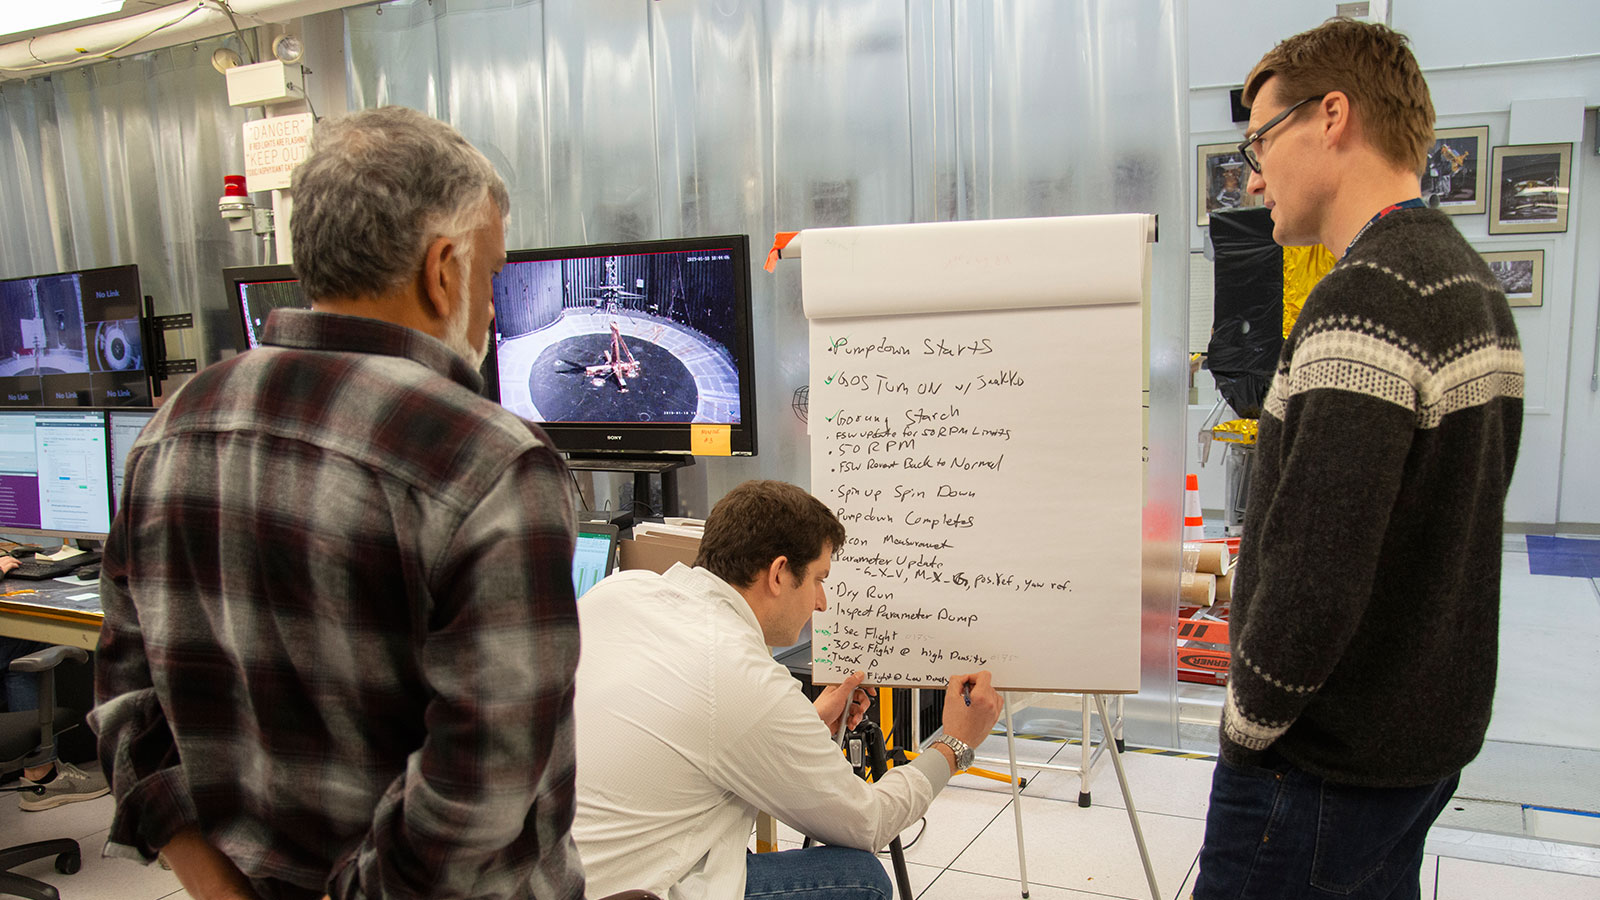 Bob Balaram, Teddy Tzanetos and Havard Grip from the NASA Mars Helicopter project discuss test results.